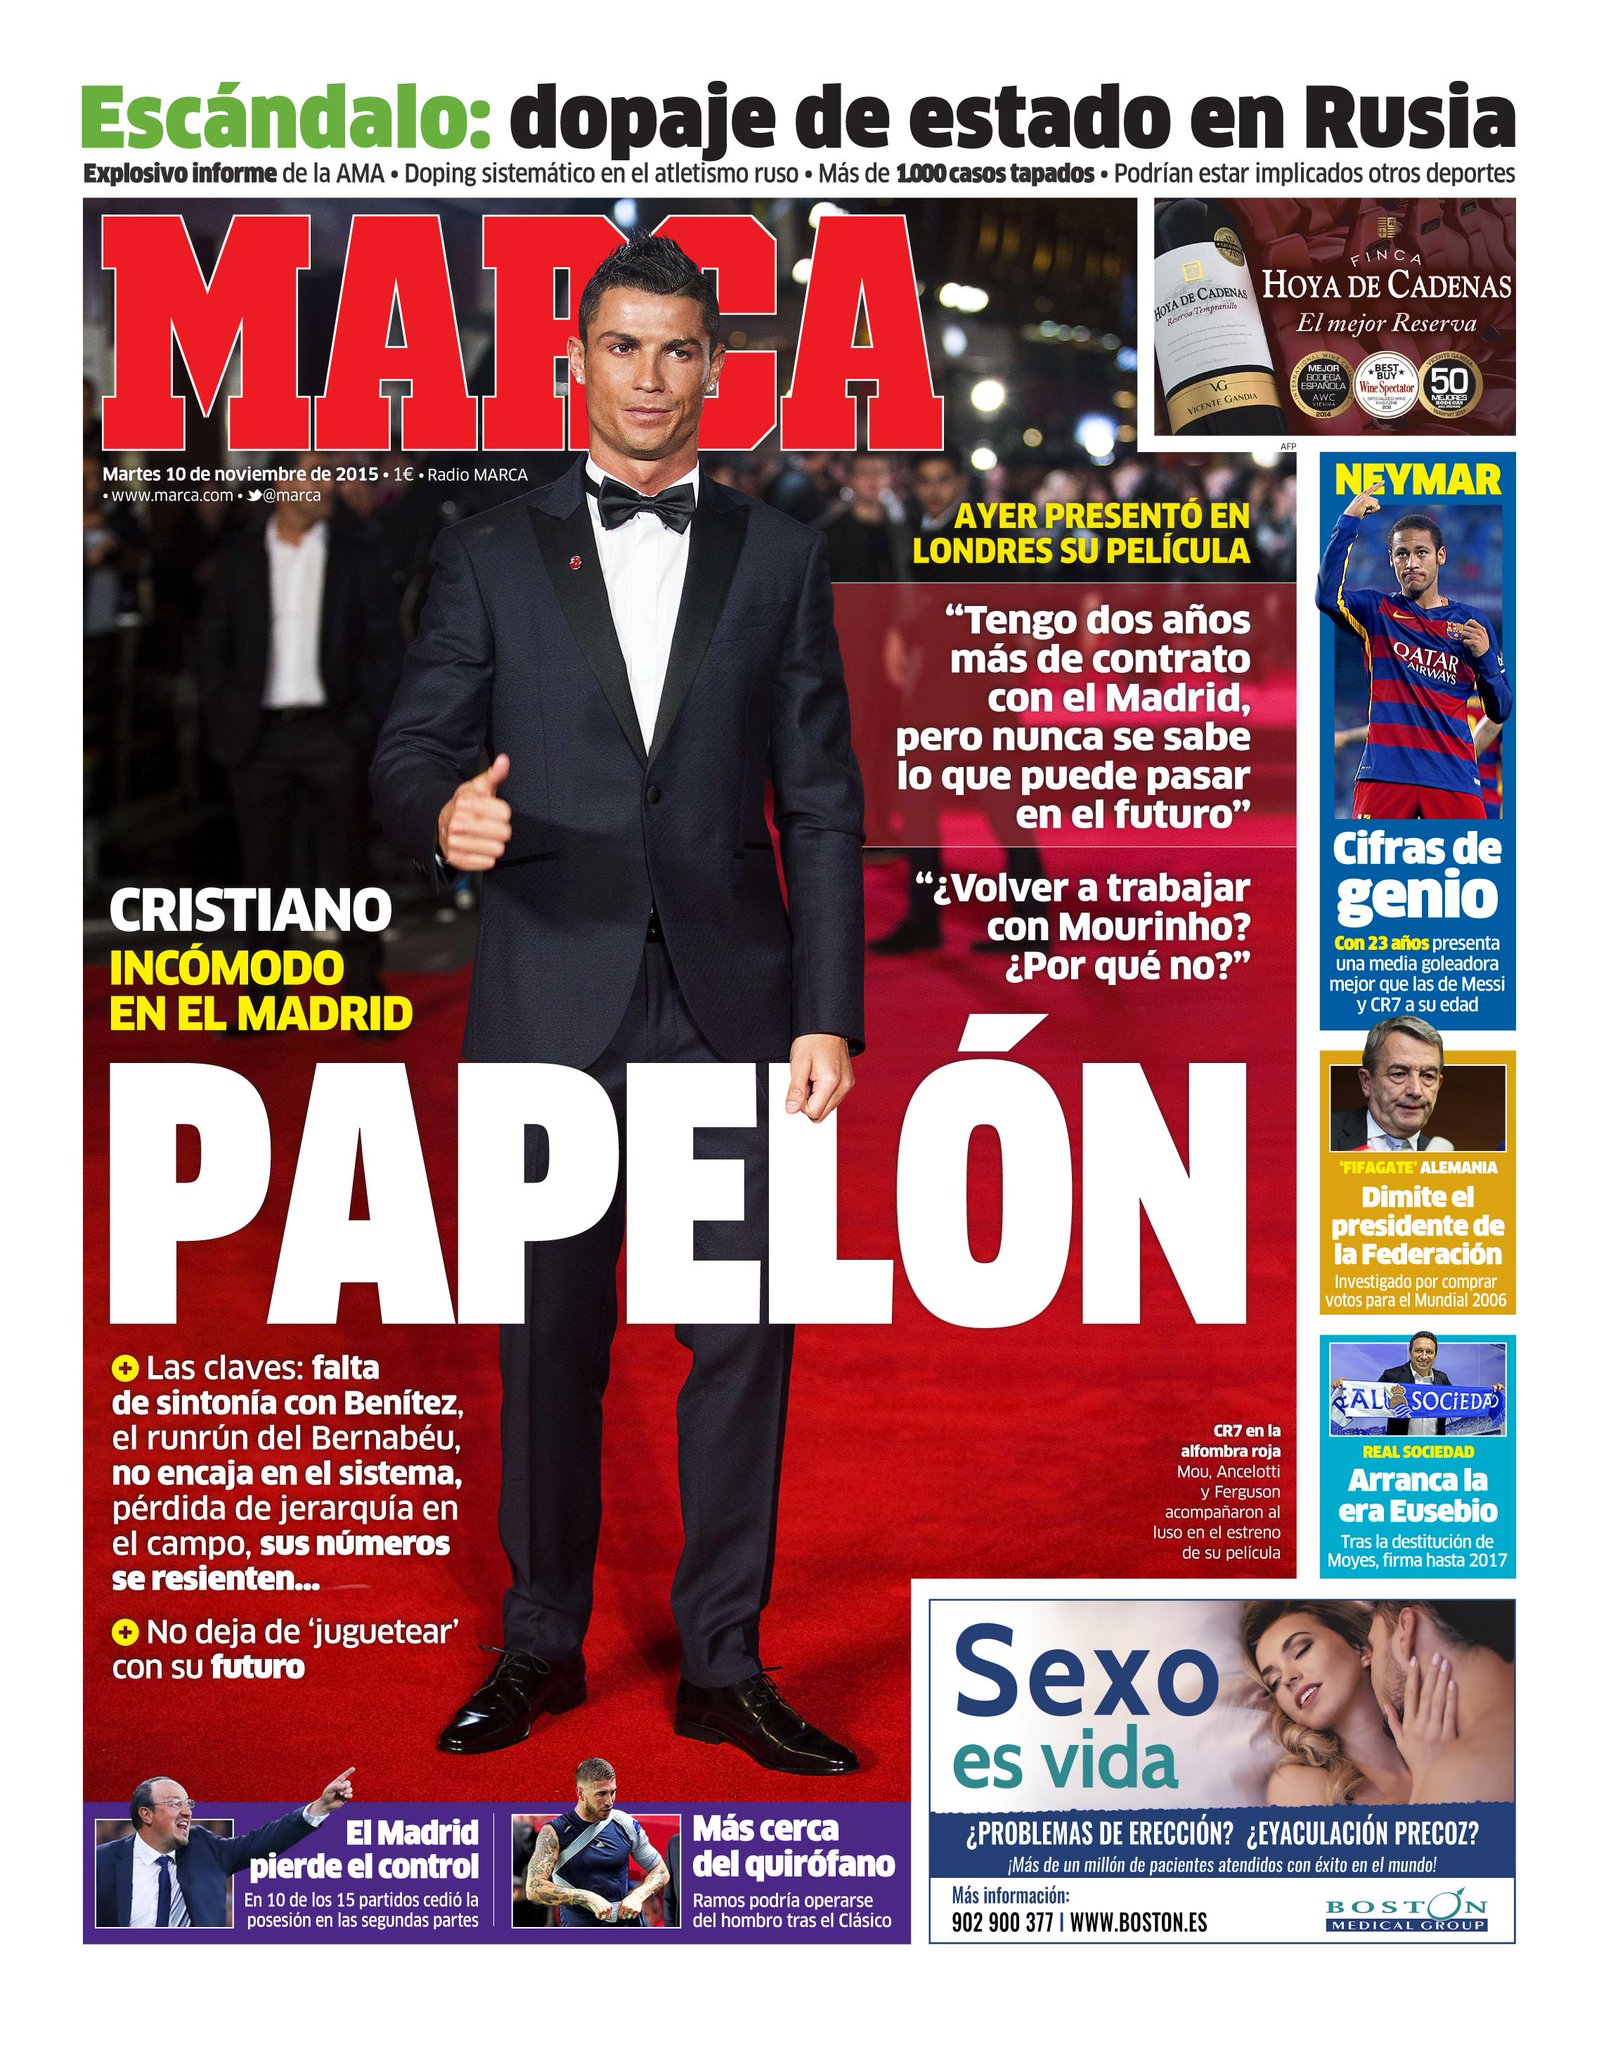 #LaPortada 'Papelón' https://t.co/oJH1VYrA7y